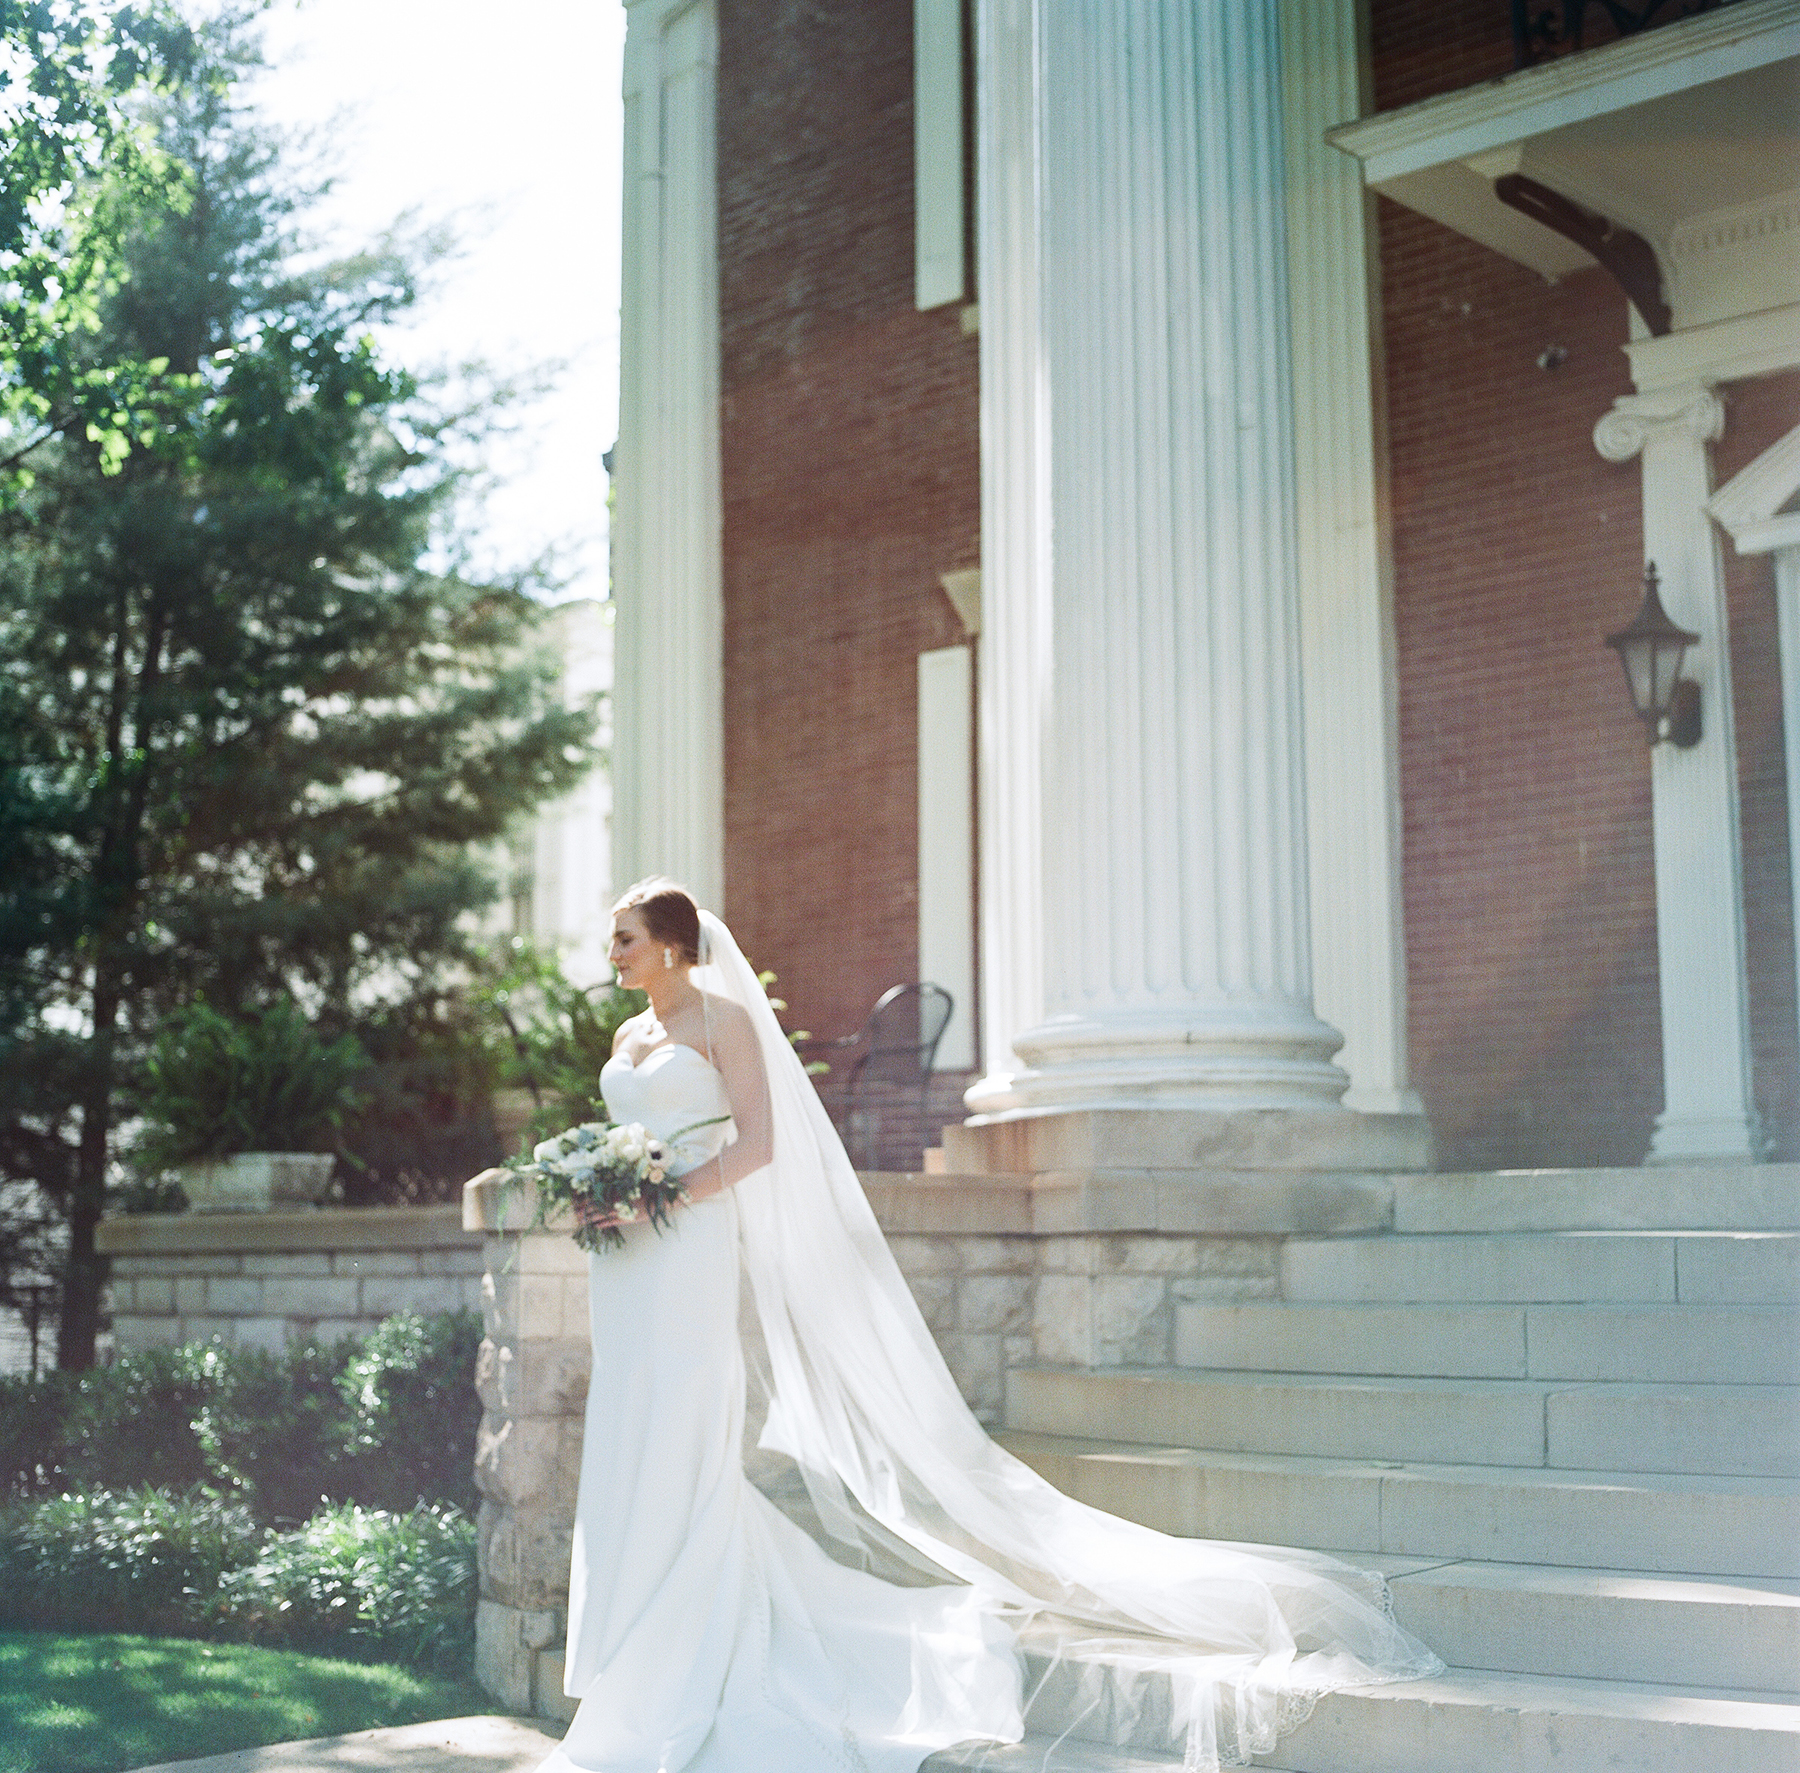 kodak-portra-wedding.jpg